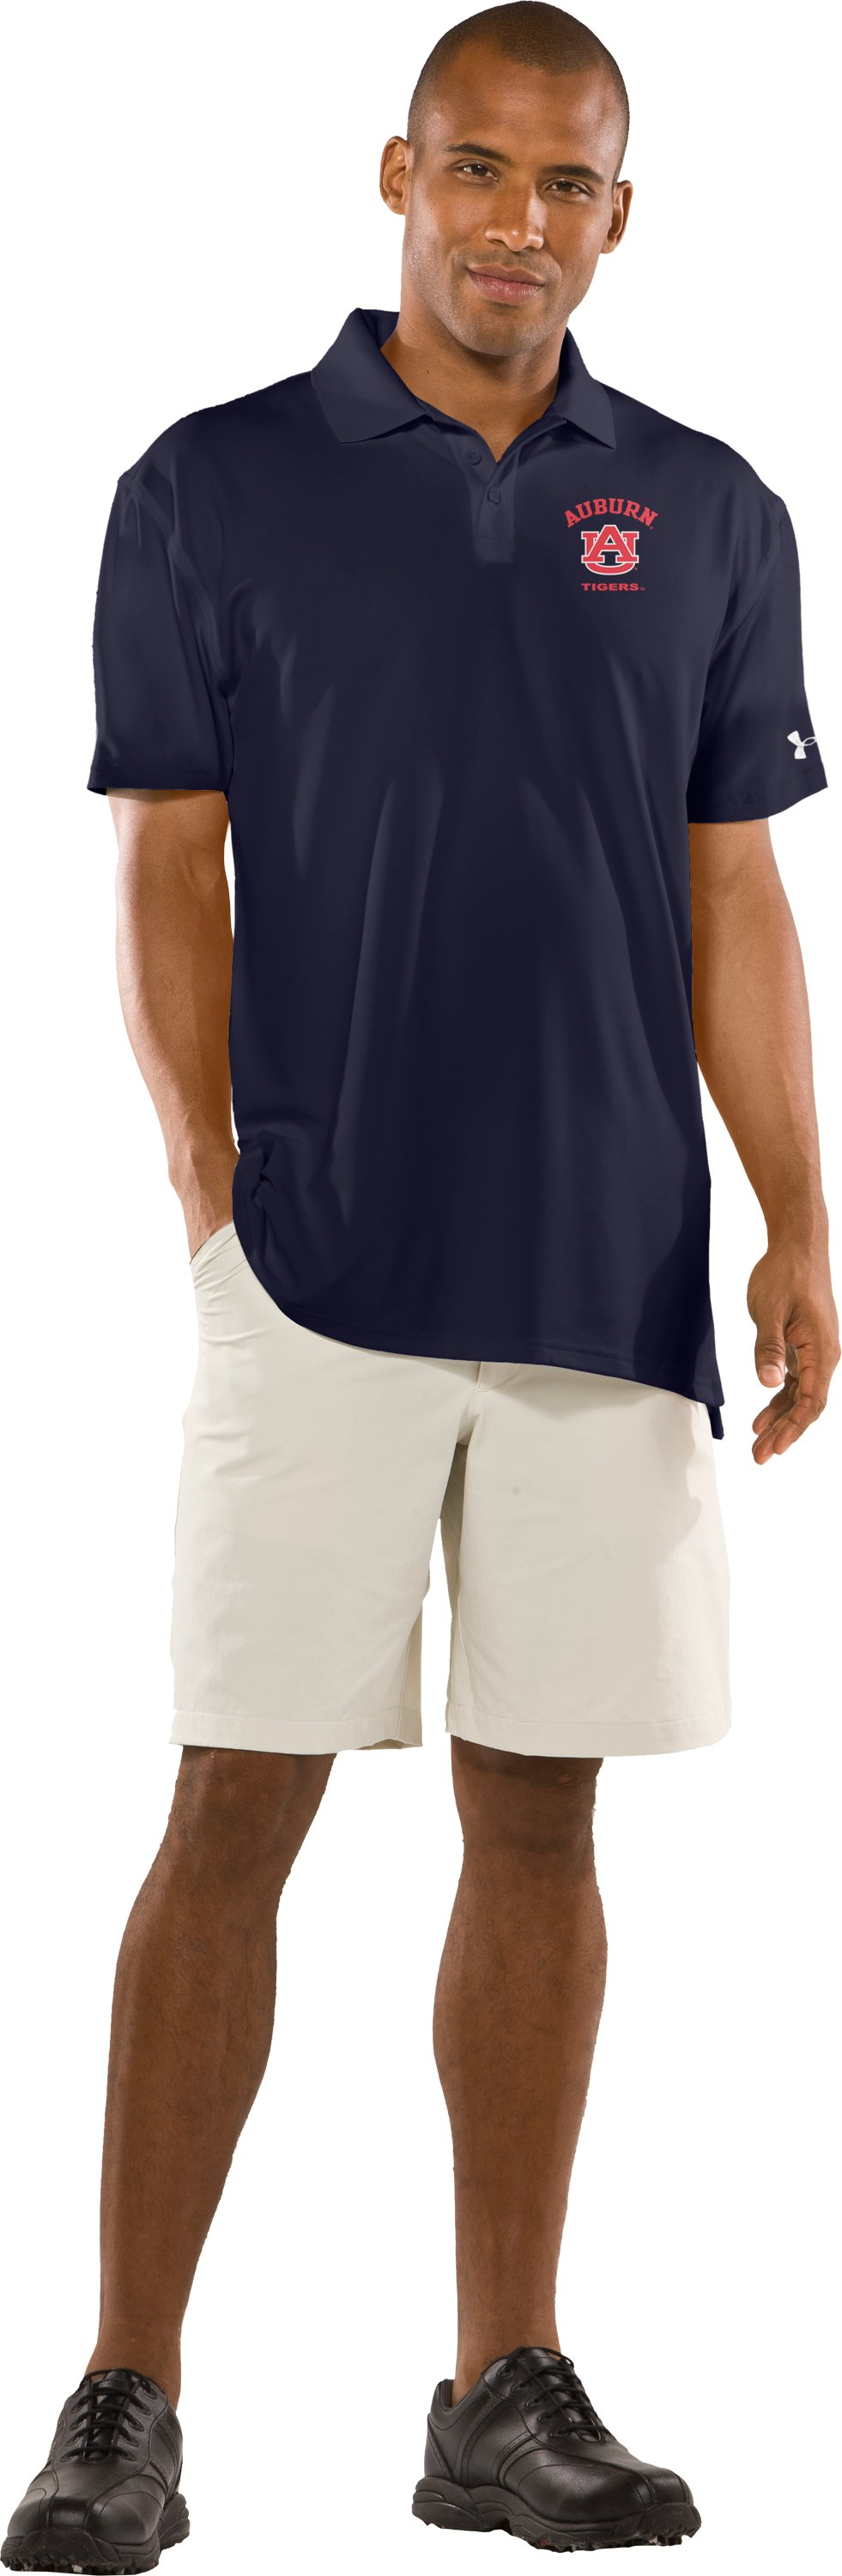 Men's Auburn UA Collegiate Polo, Midnight Navy